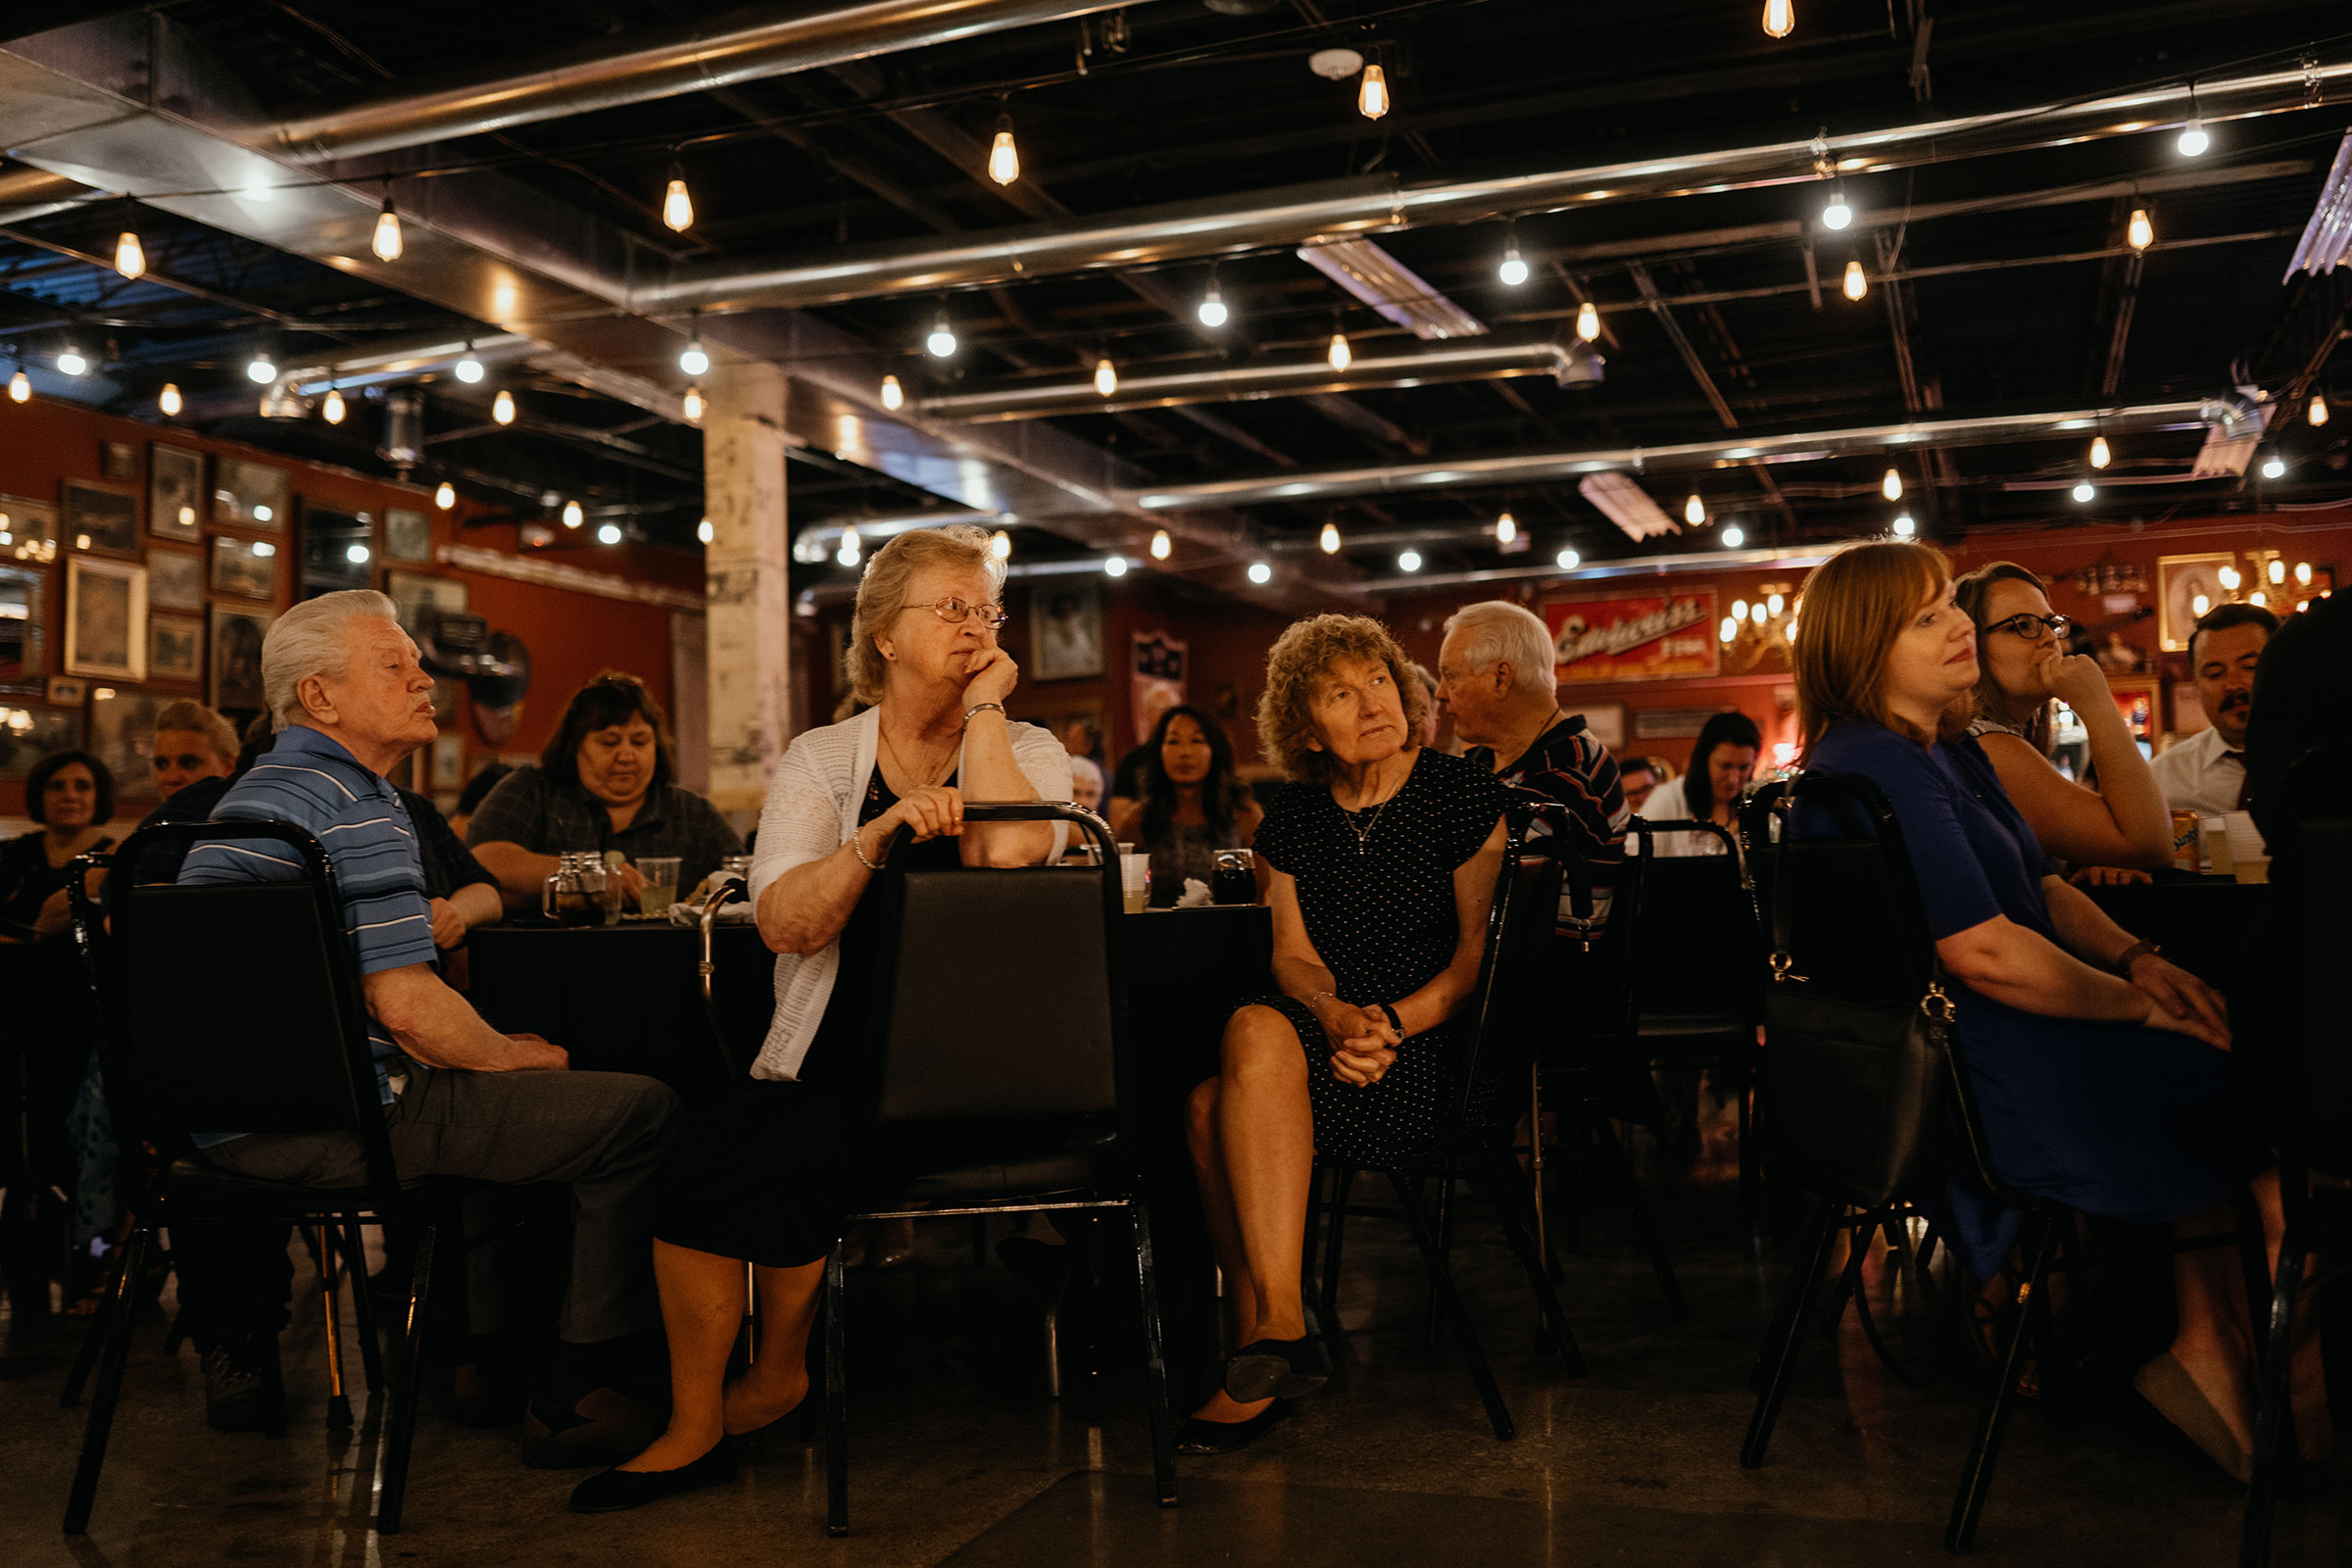 guests-watching-speeches-decades-event-center-building-desmoines-iowa-raelyn-ramey-photography..jpg